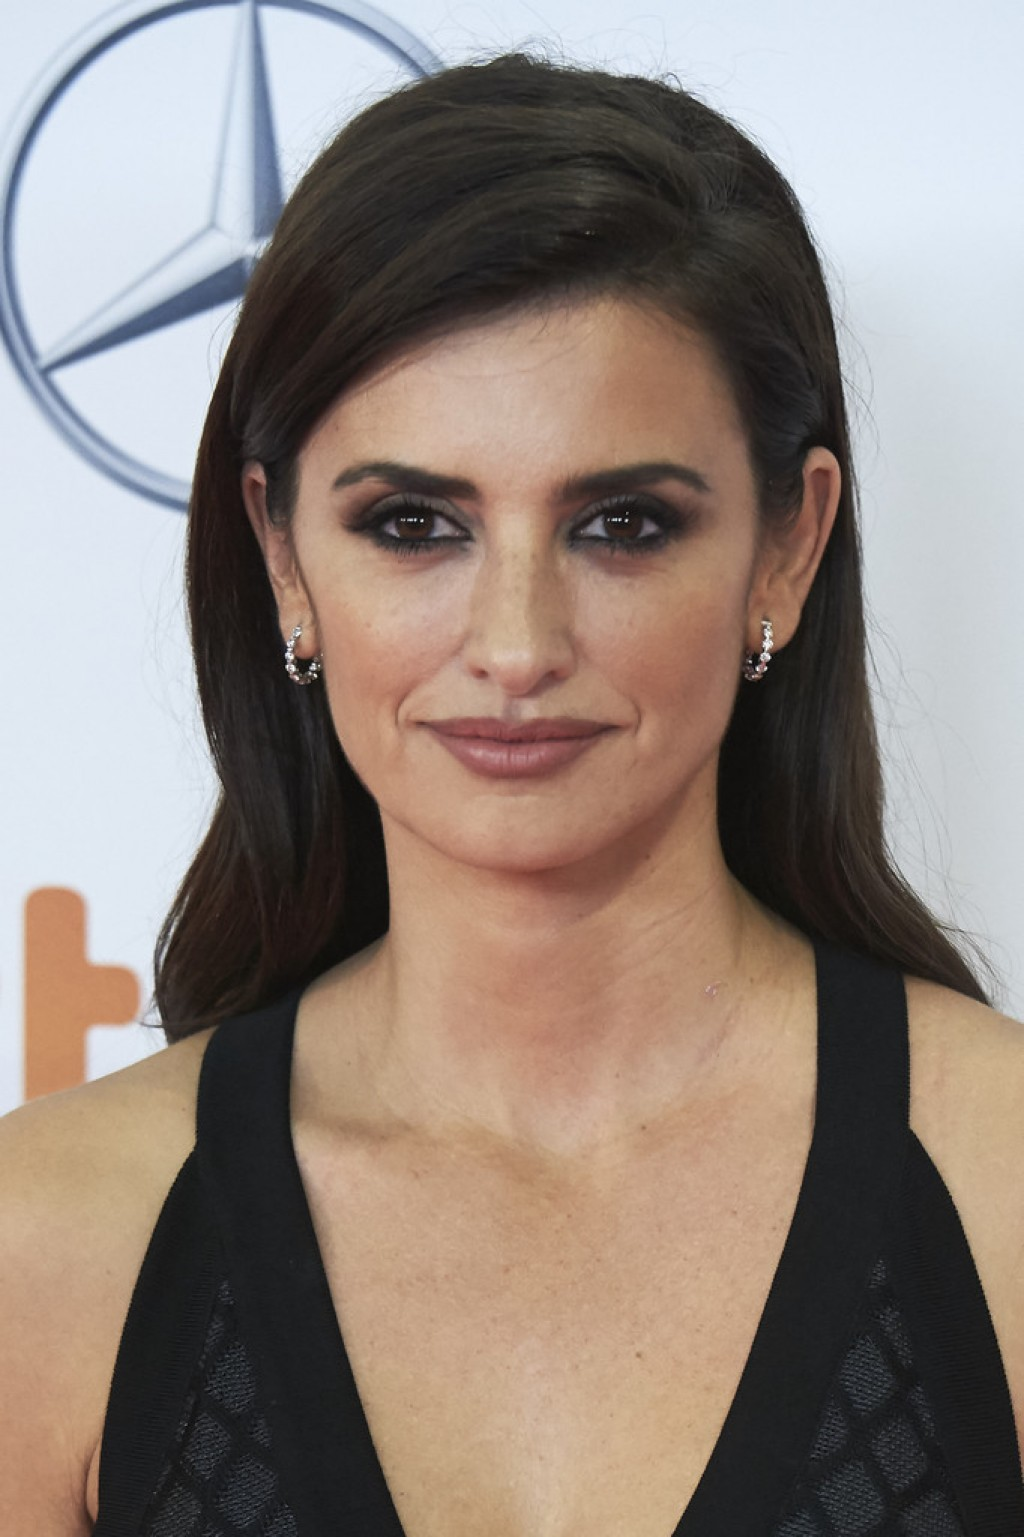 penelope-cruz-jose-maria-forque-awards-makeup-1024x1537